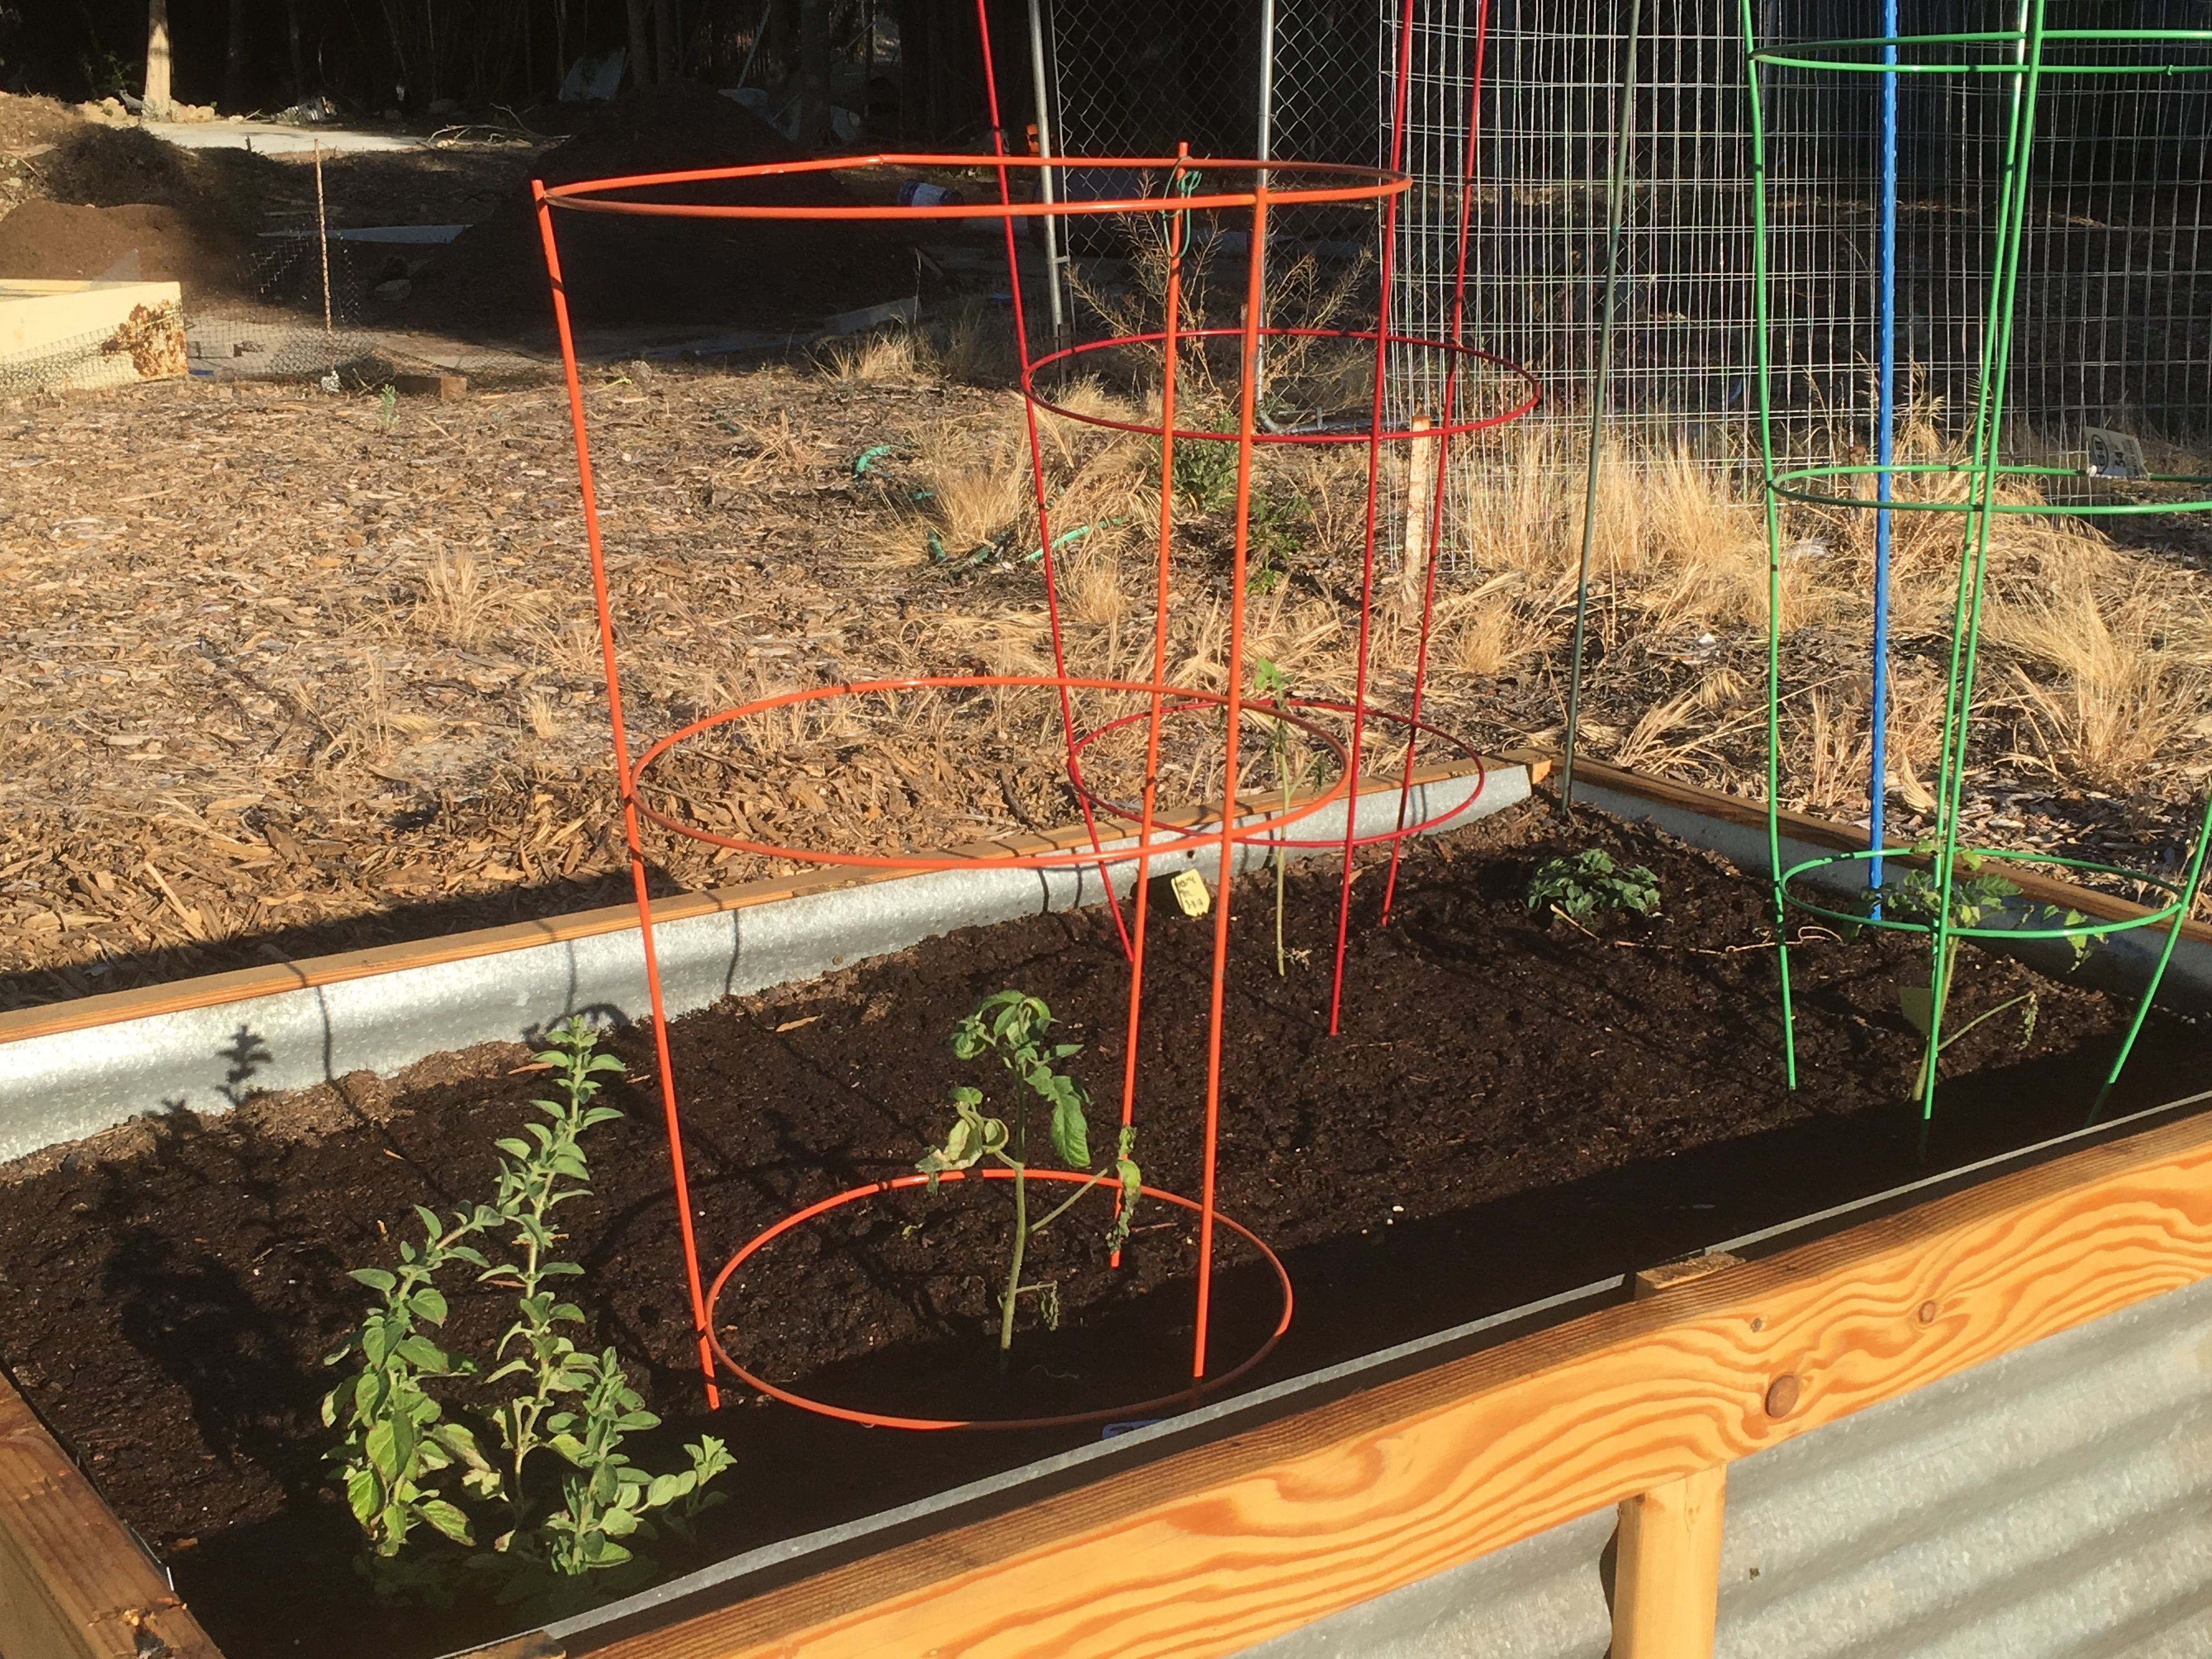 The transplanted tomatoes that did survive the crazy wind last week ...